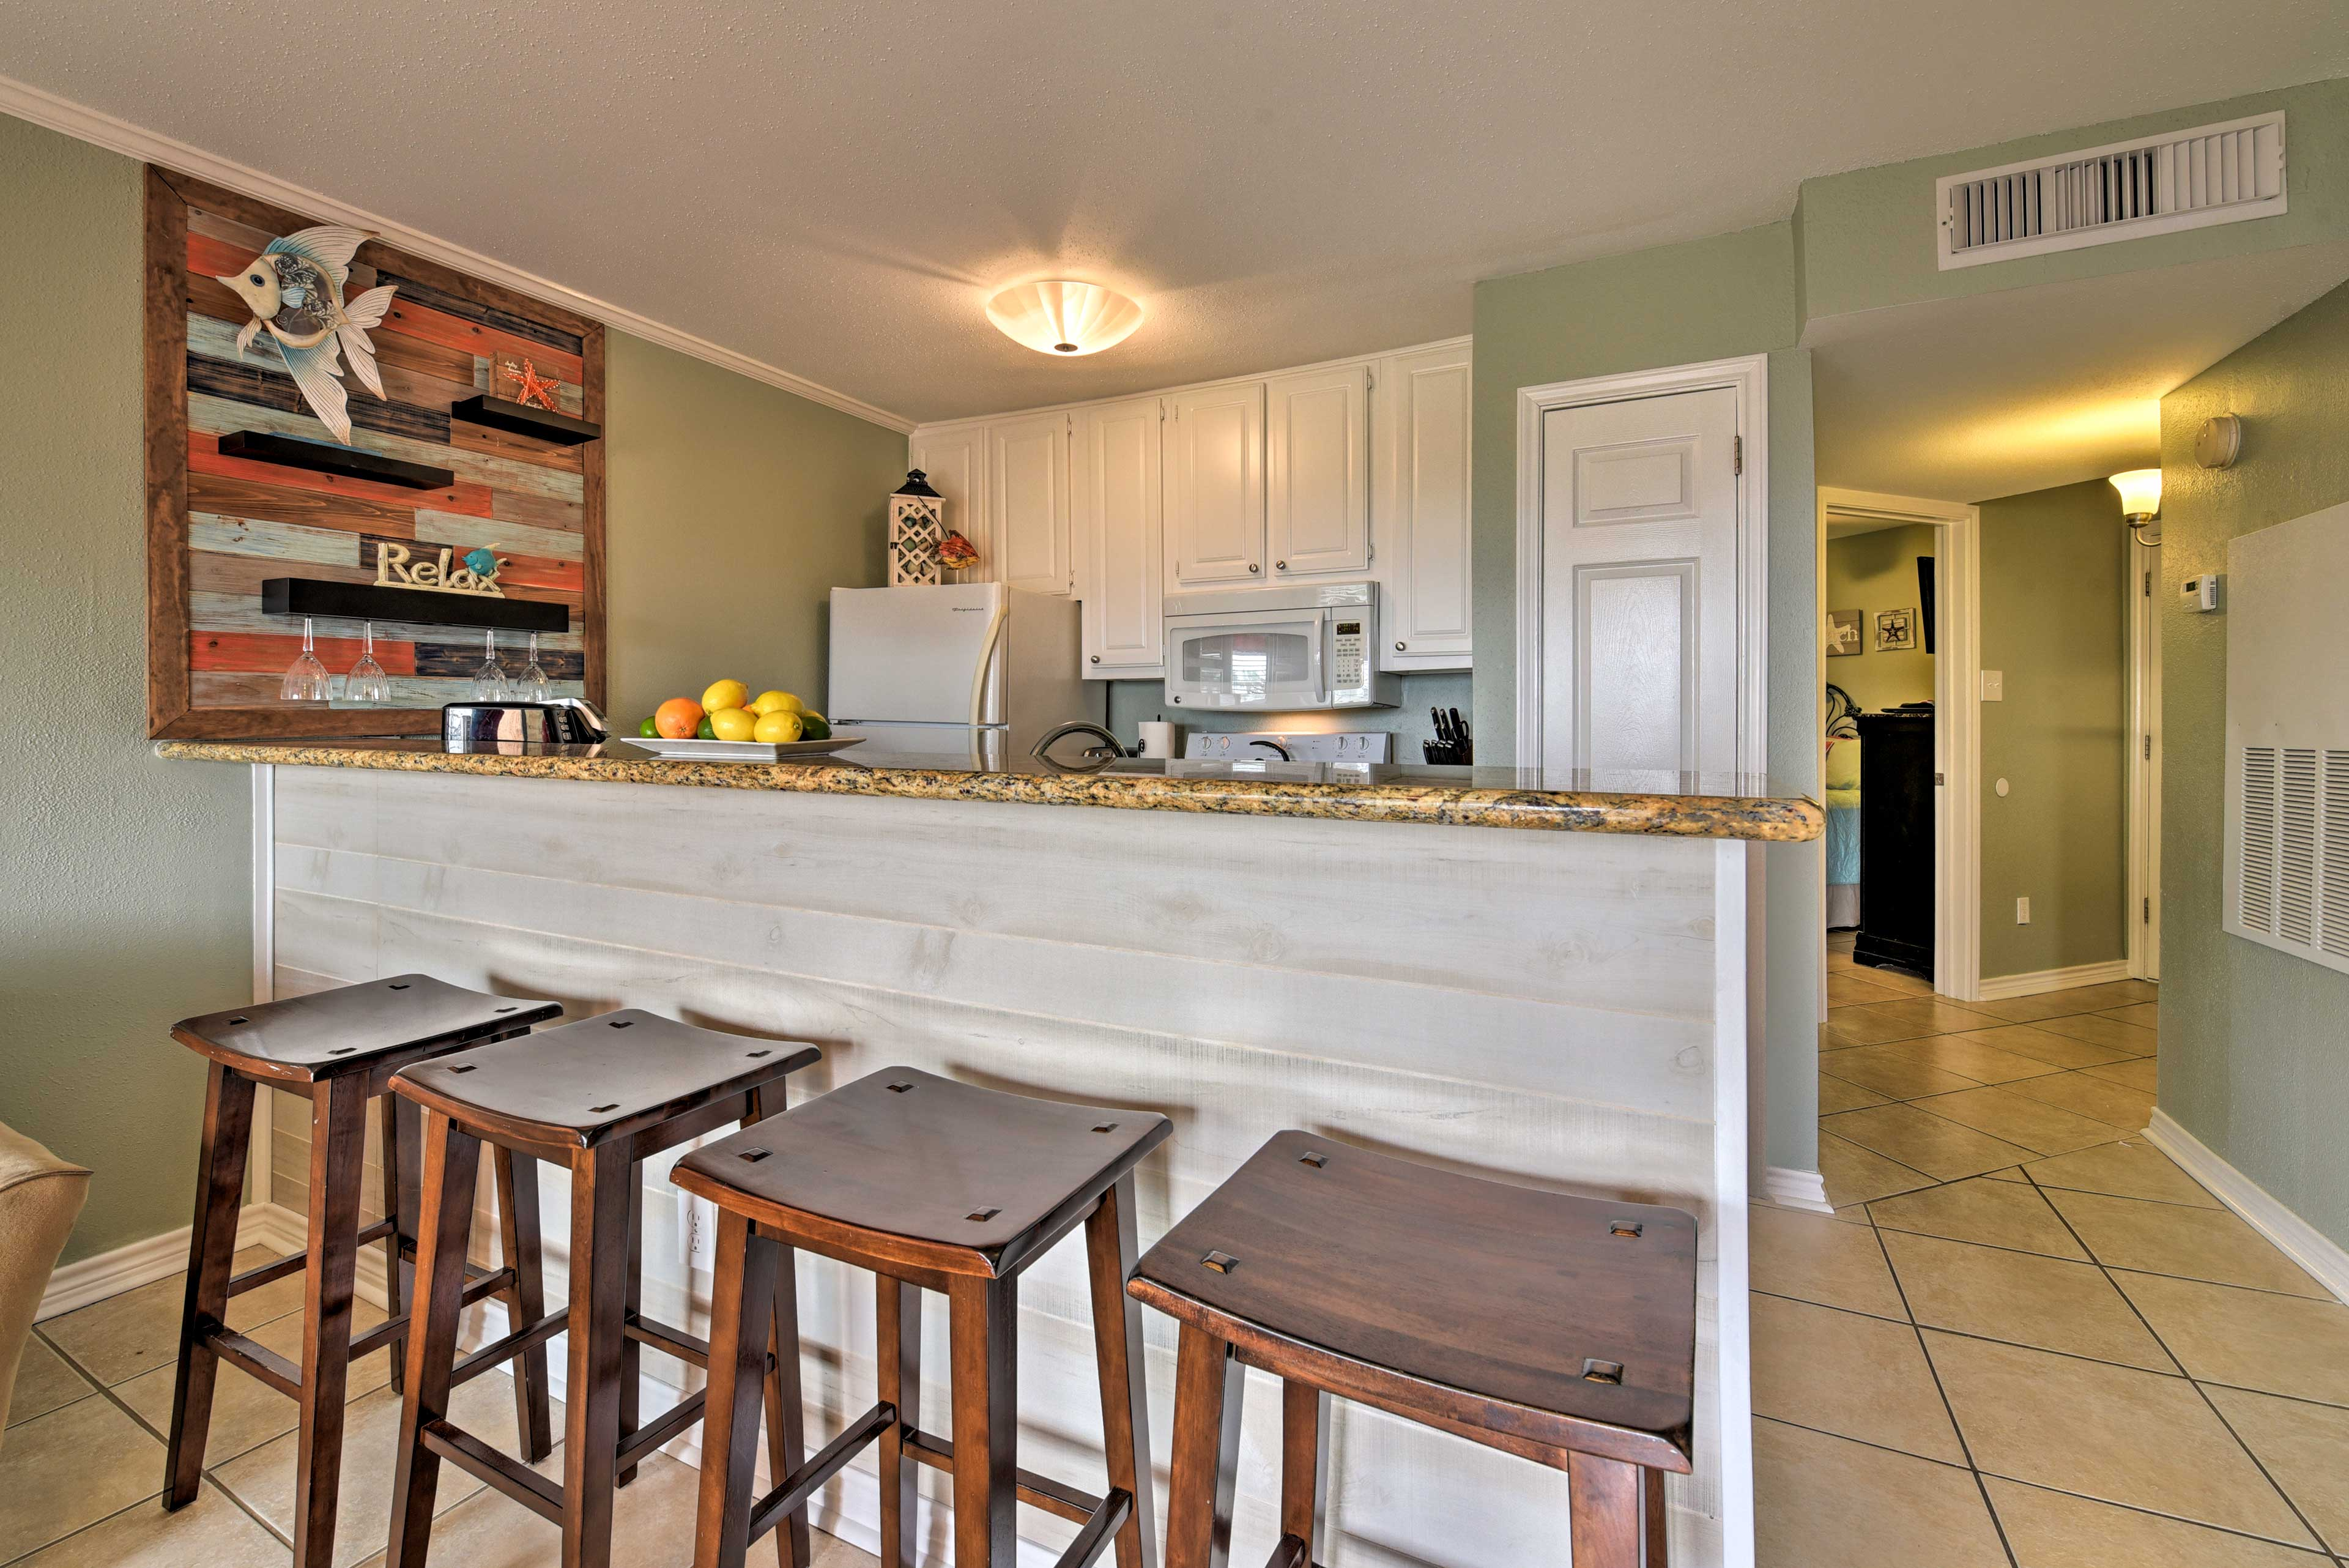 The fully equipped kitchen makes it easy to cook for the family.